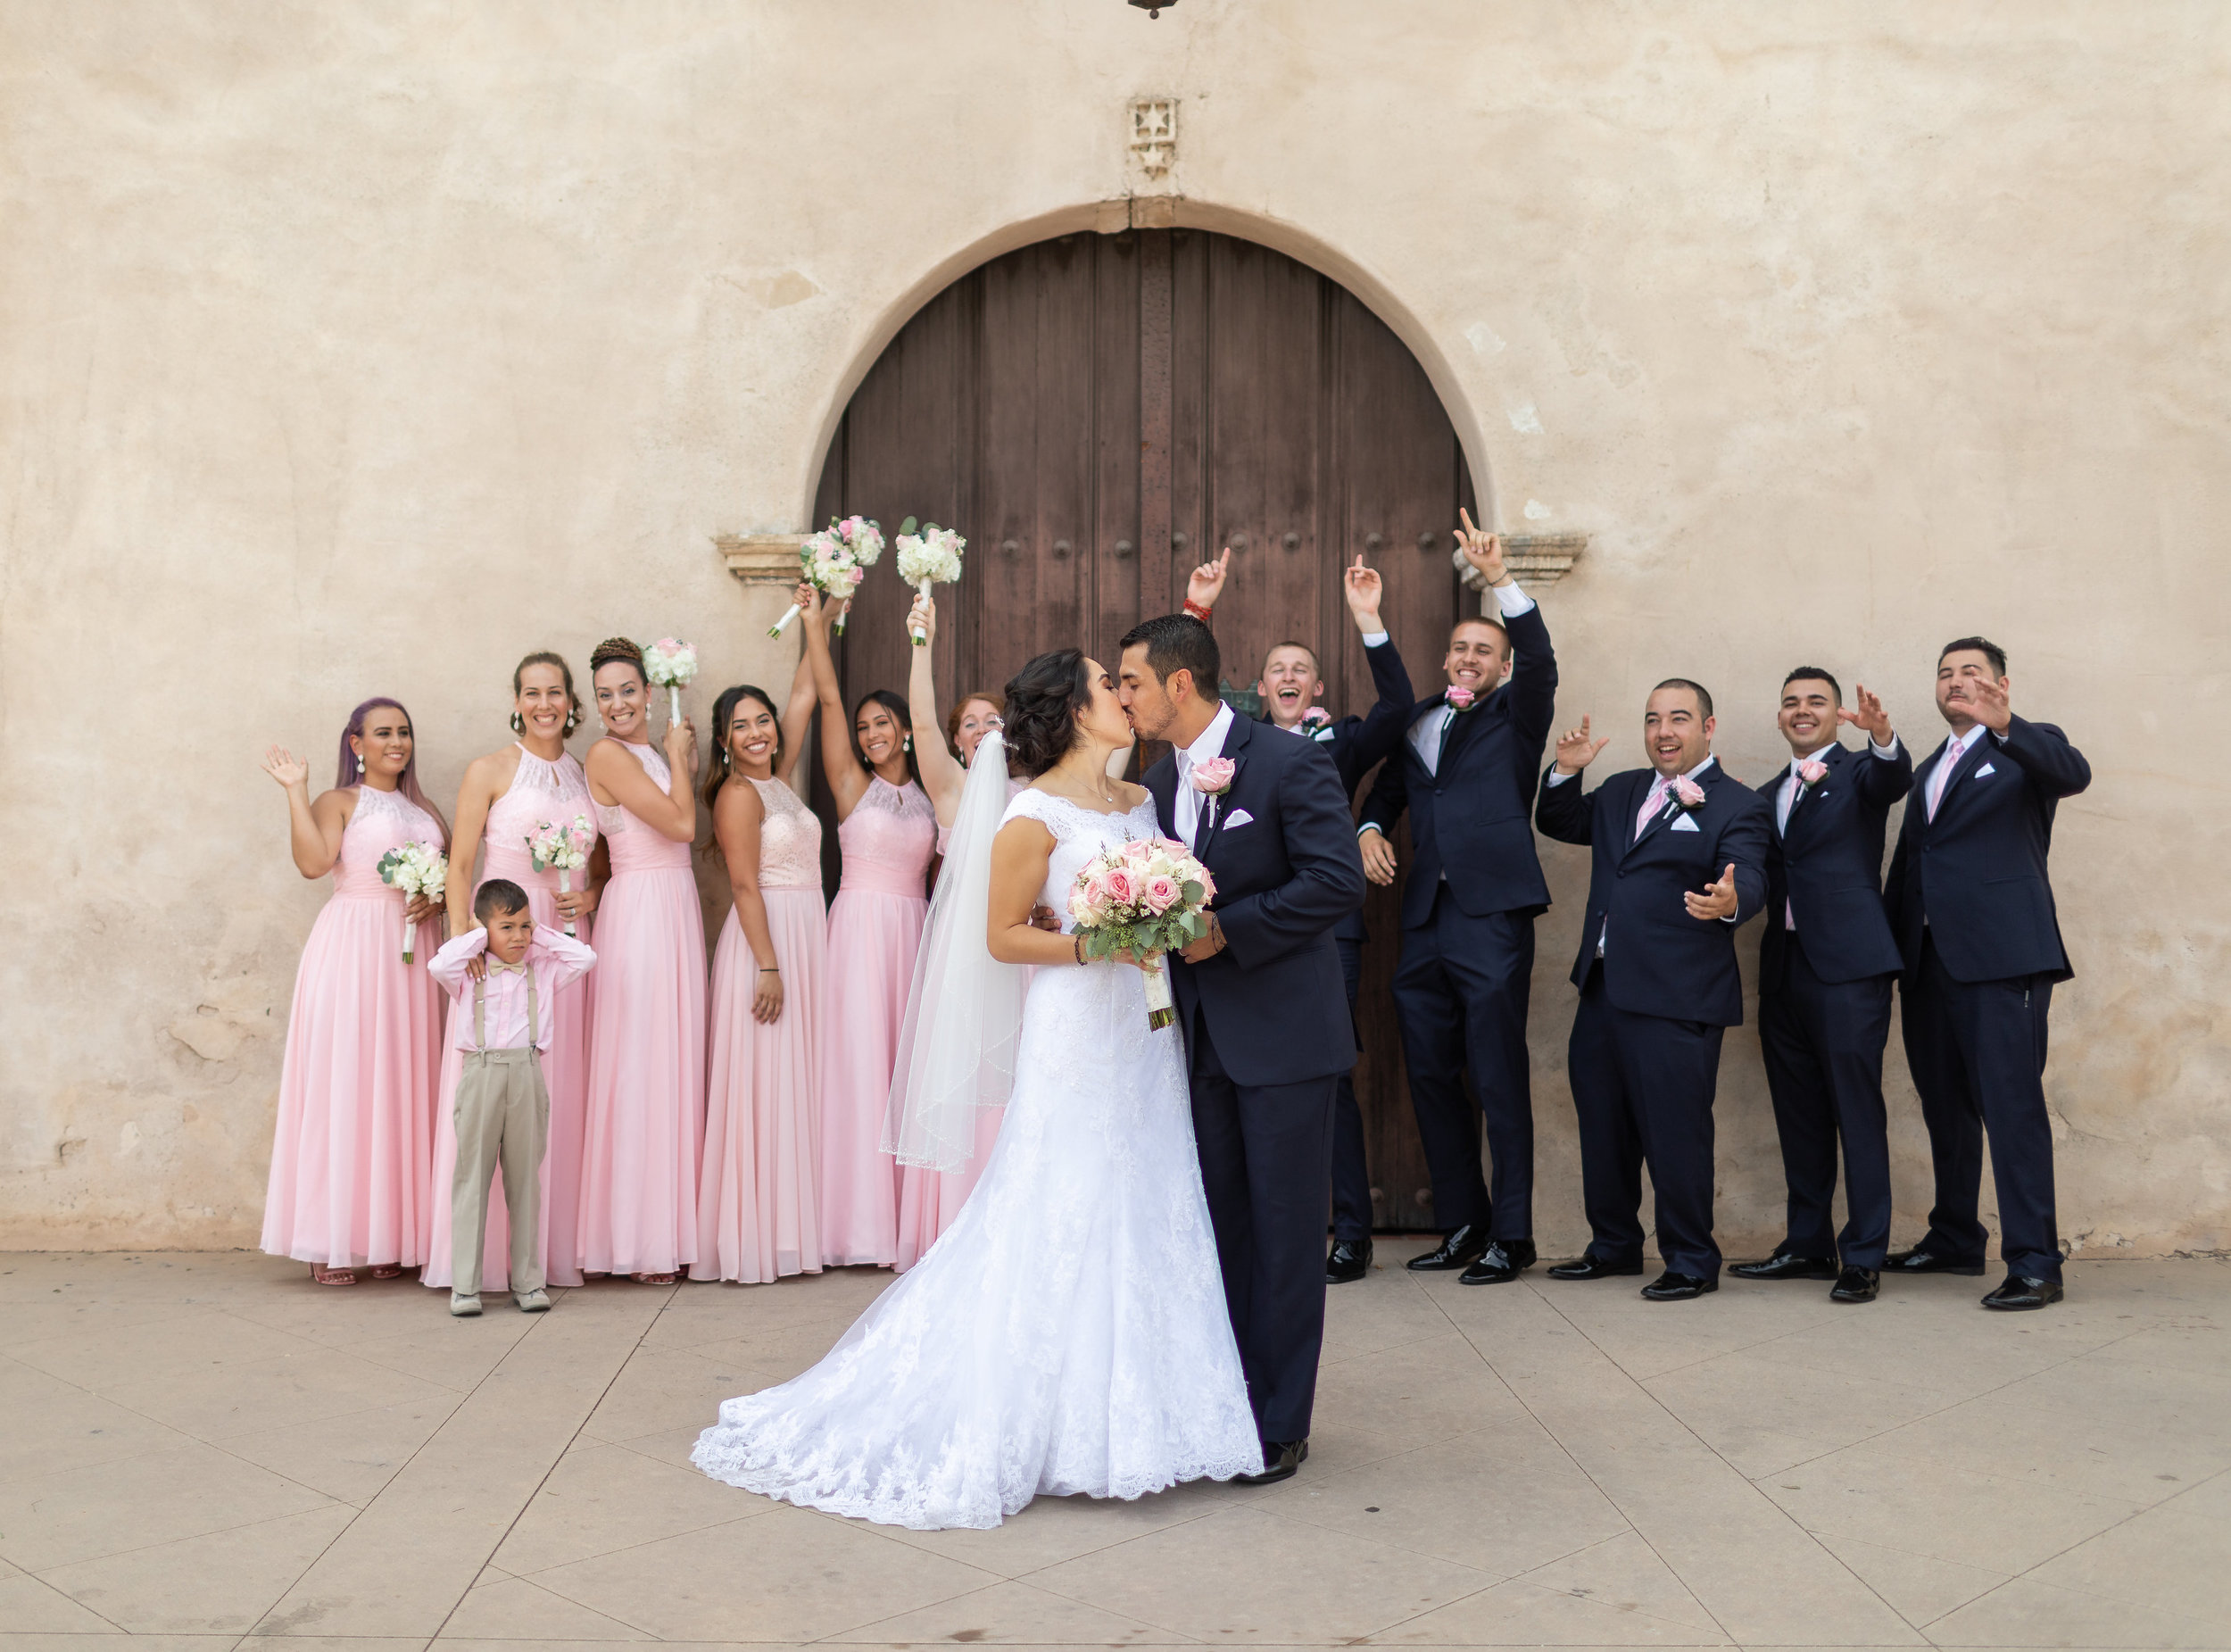 ! Fun Wedding Party Photo with Couple Kissing.jpg